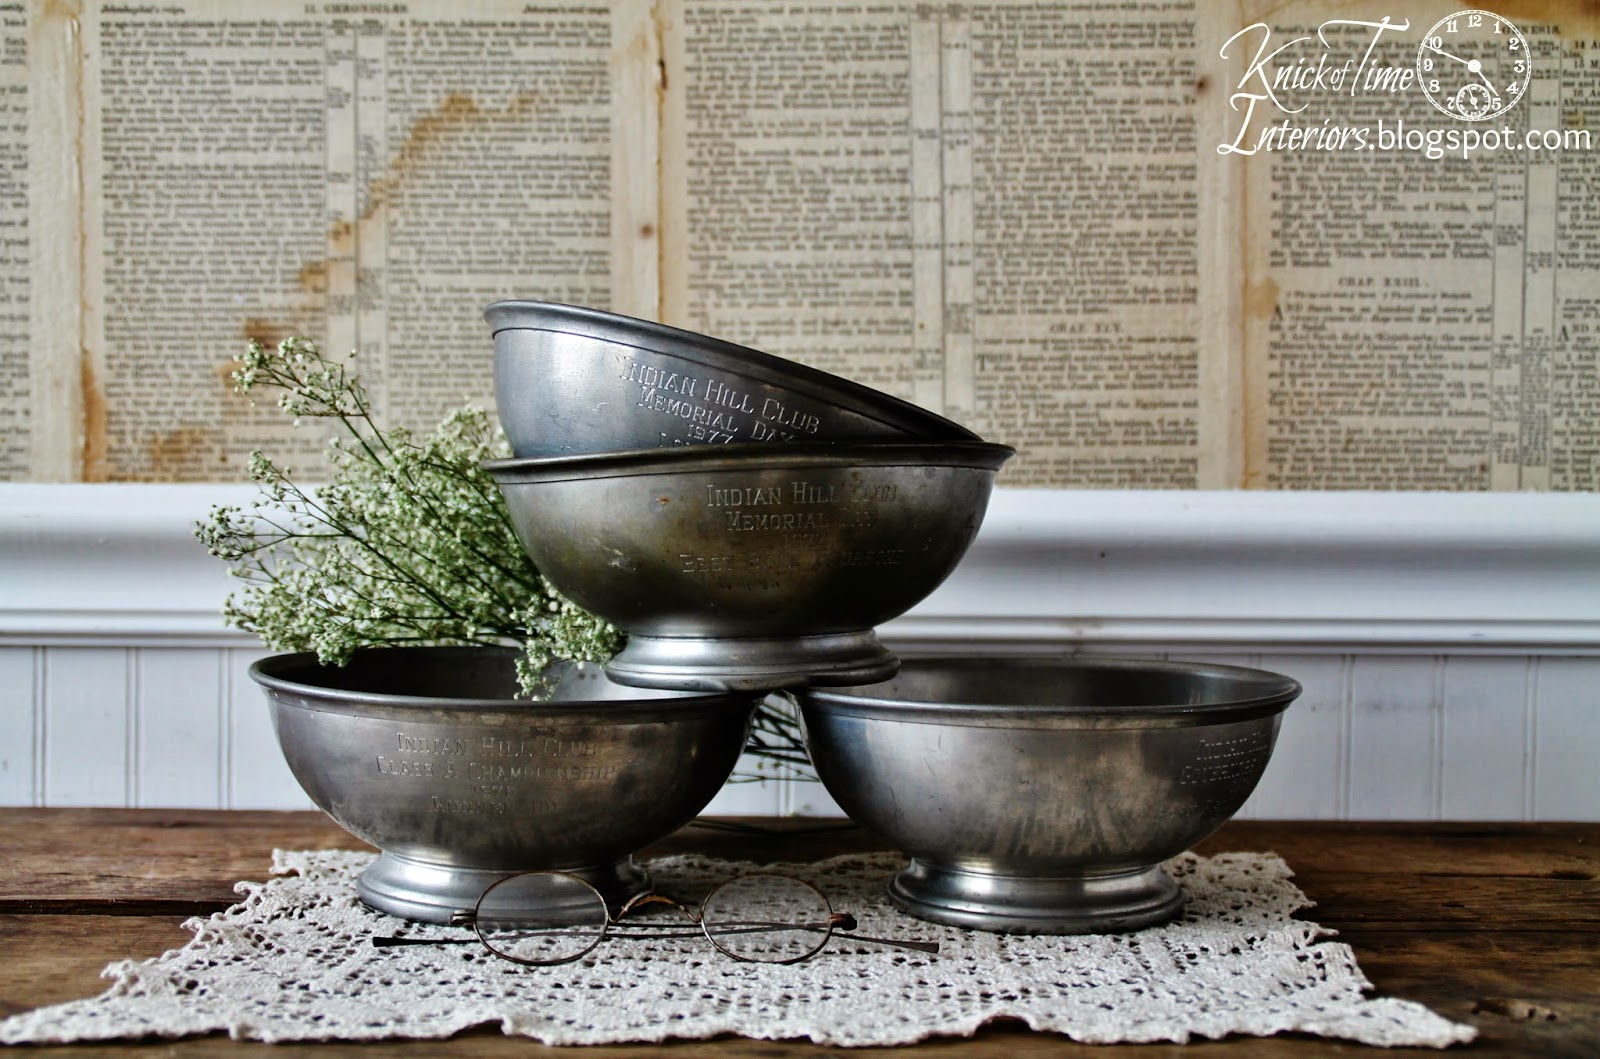 Vintage Trophy Award Pewter Bowls available from Knick of Time